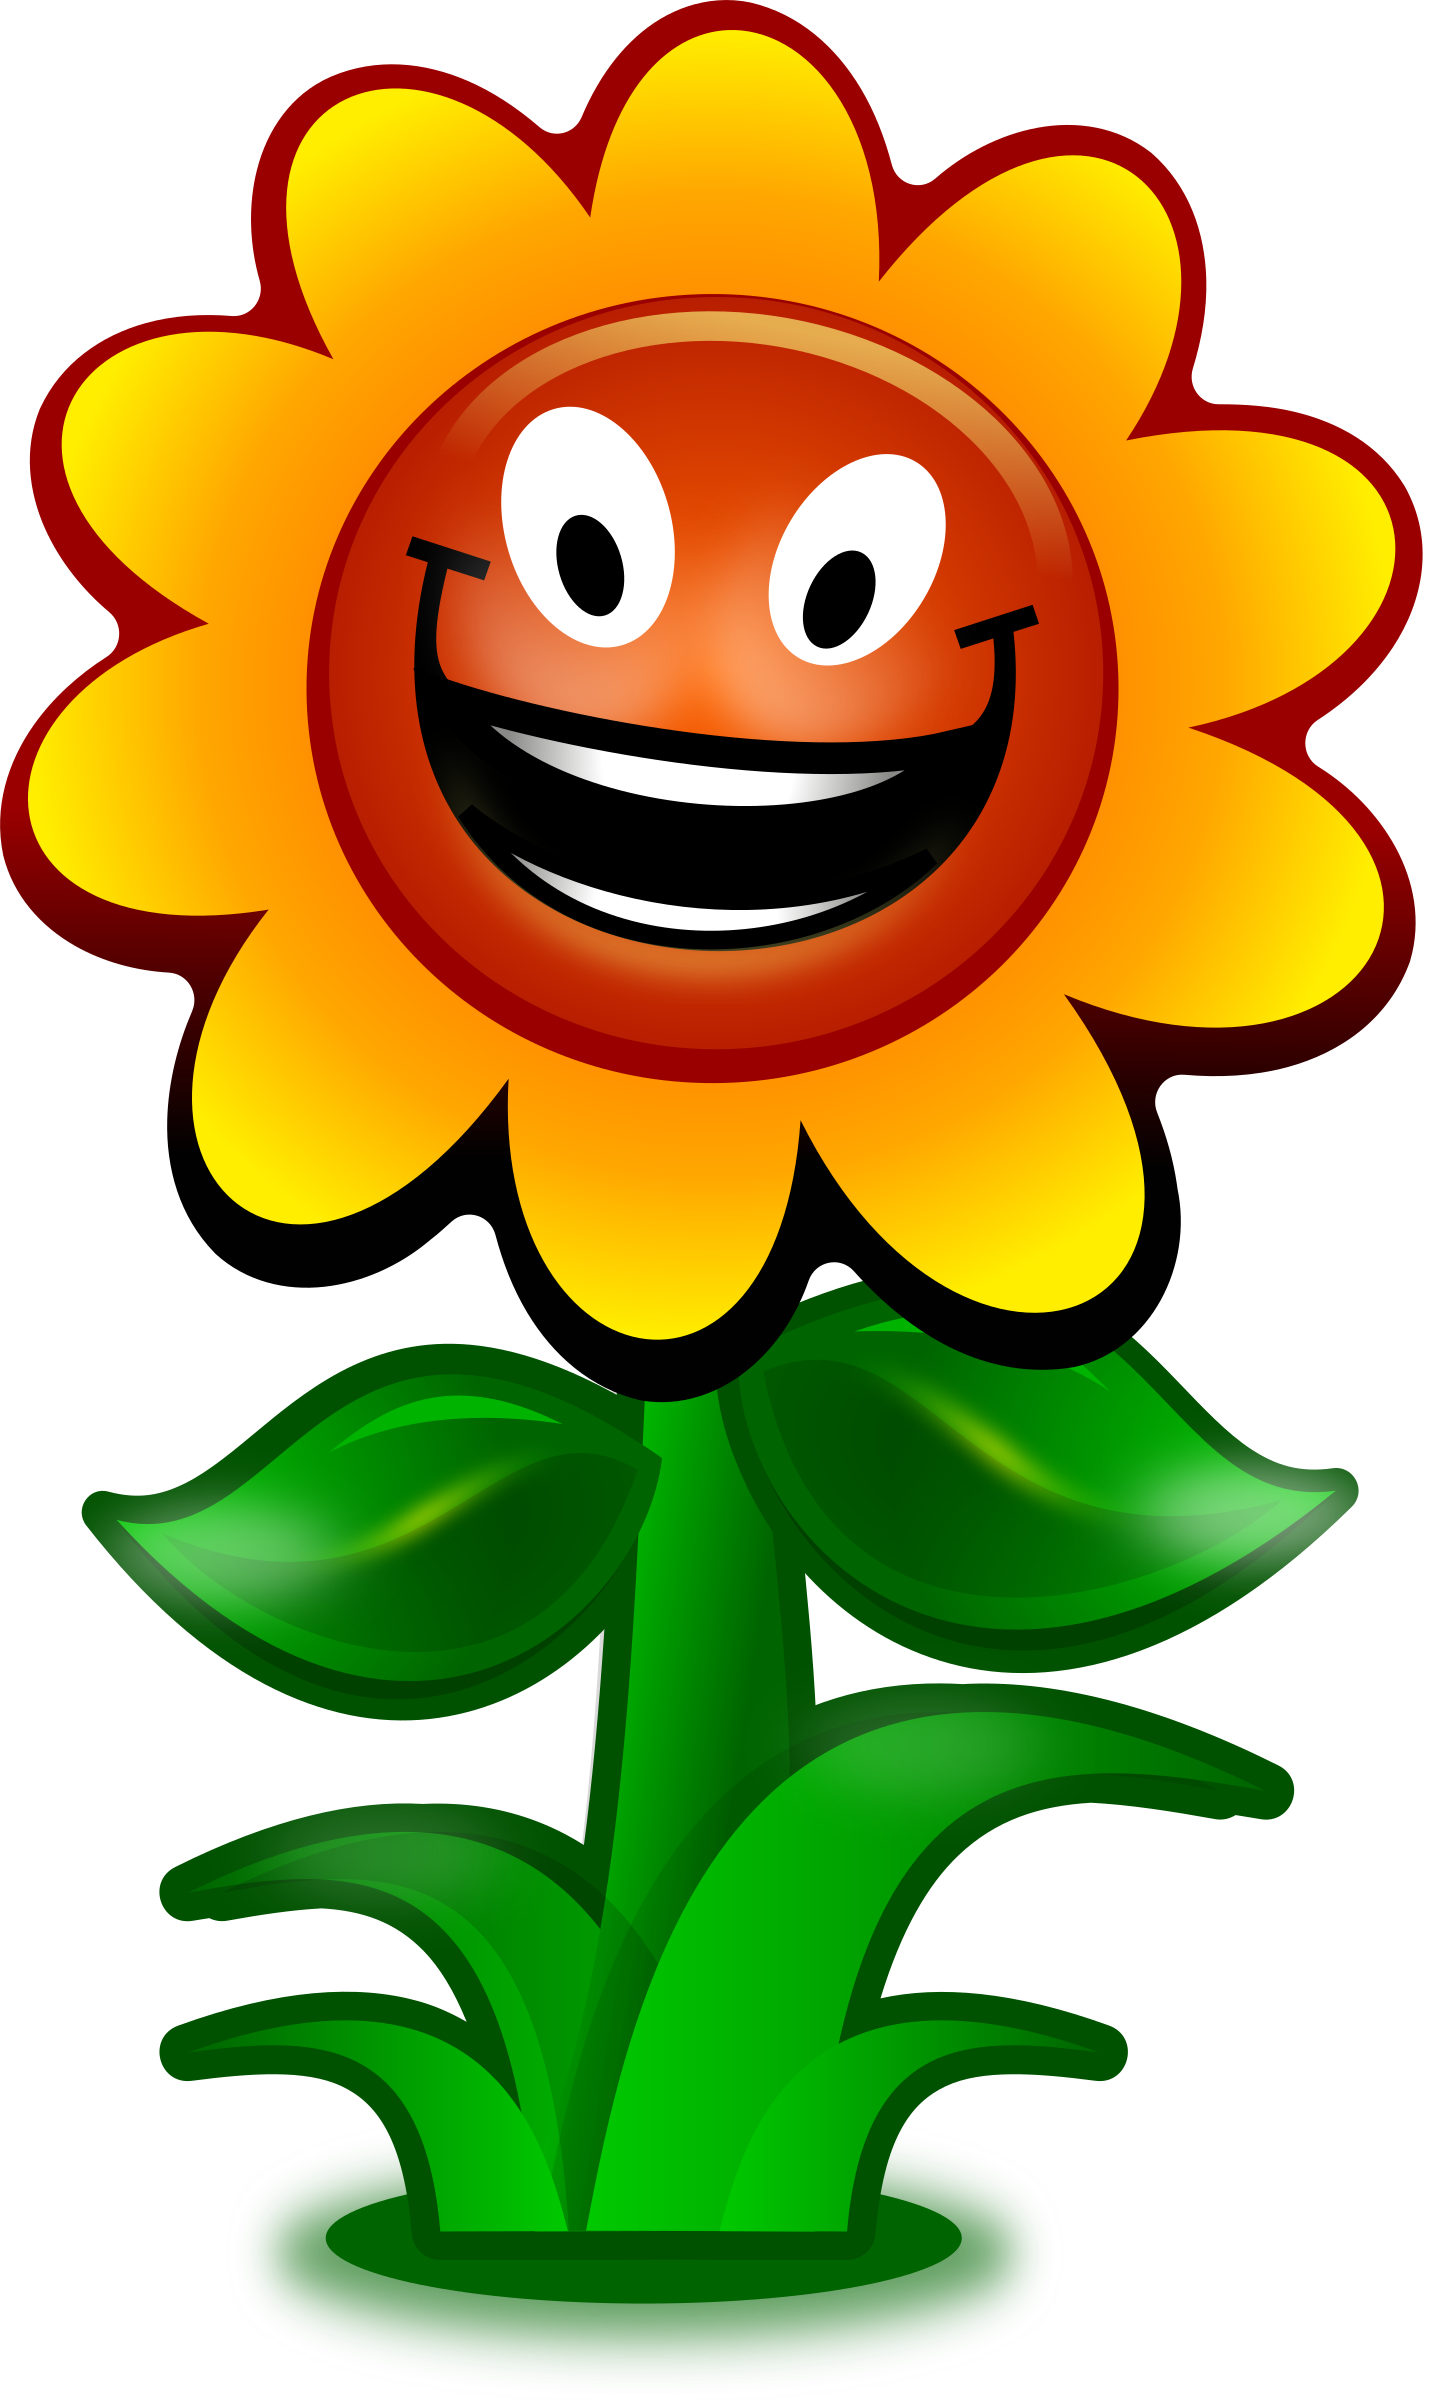 Yearbook clipart animated. Cartoon flower game character